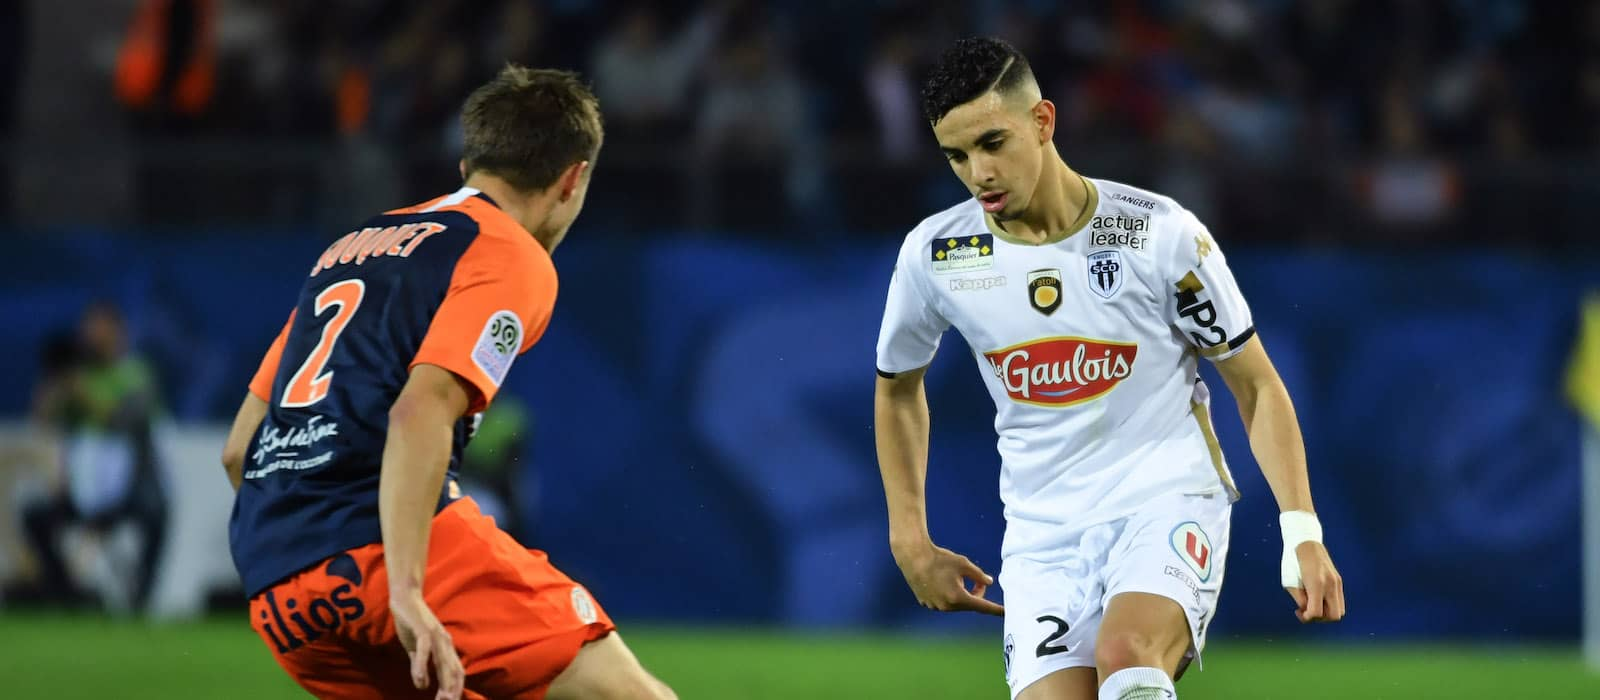 Rayan Ait-Nouri visits Old Trafford as Man United launch charm offensive